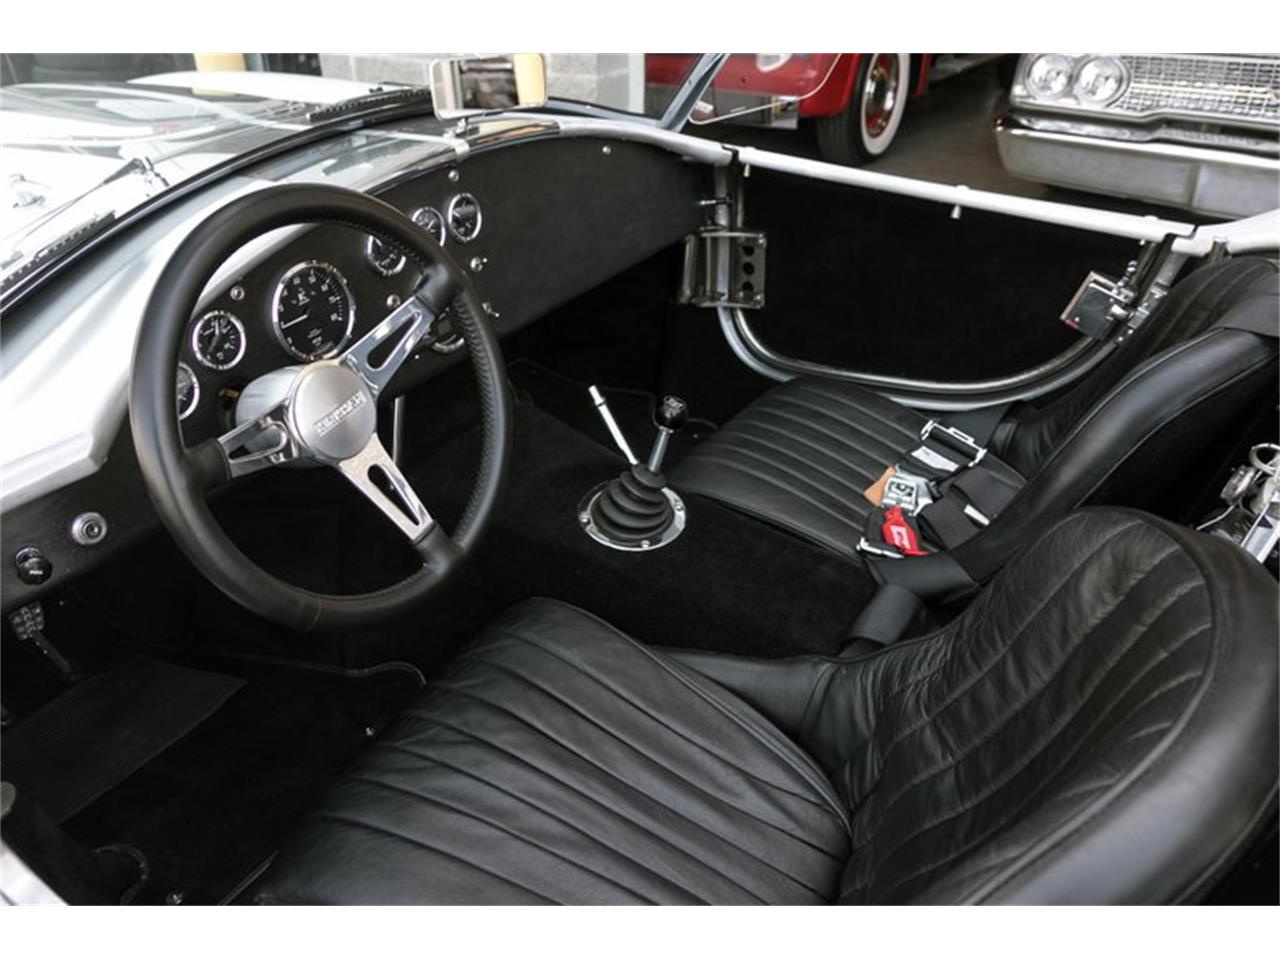 Large Picture of Classic '65 Cobra located in St. Charles Missouri - $179,995.00 - OAK6